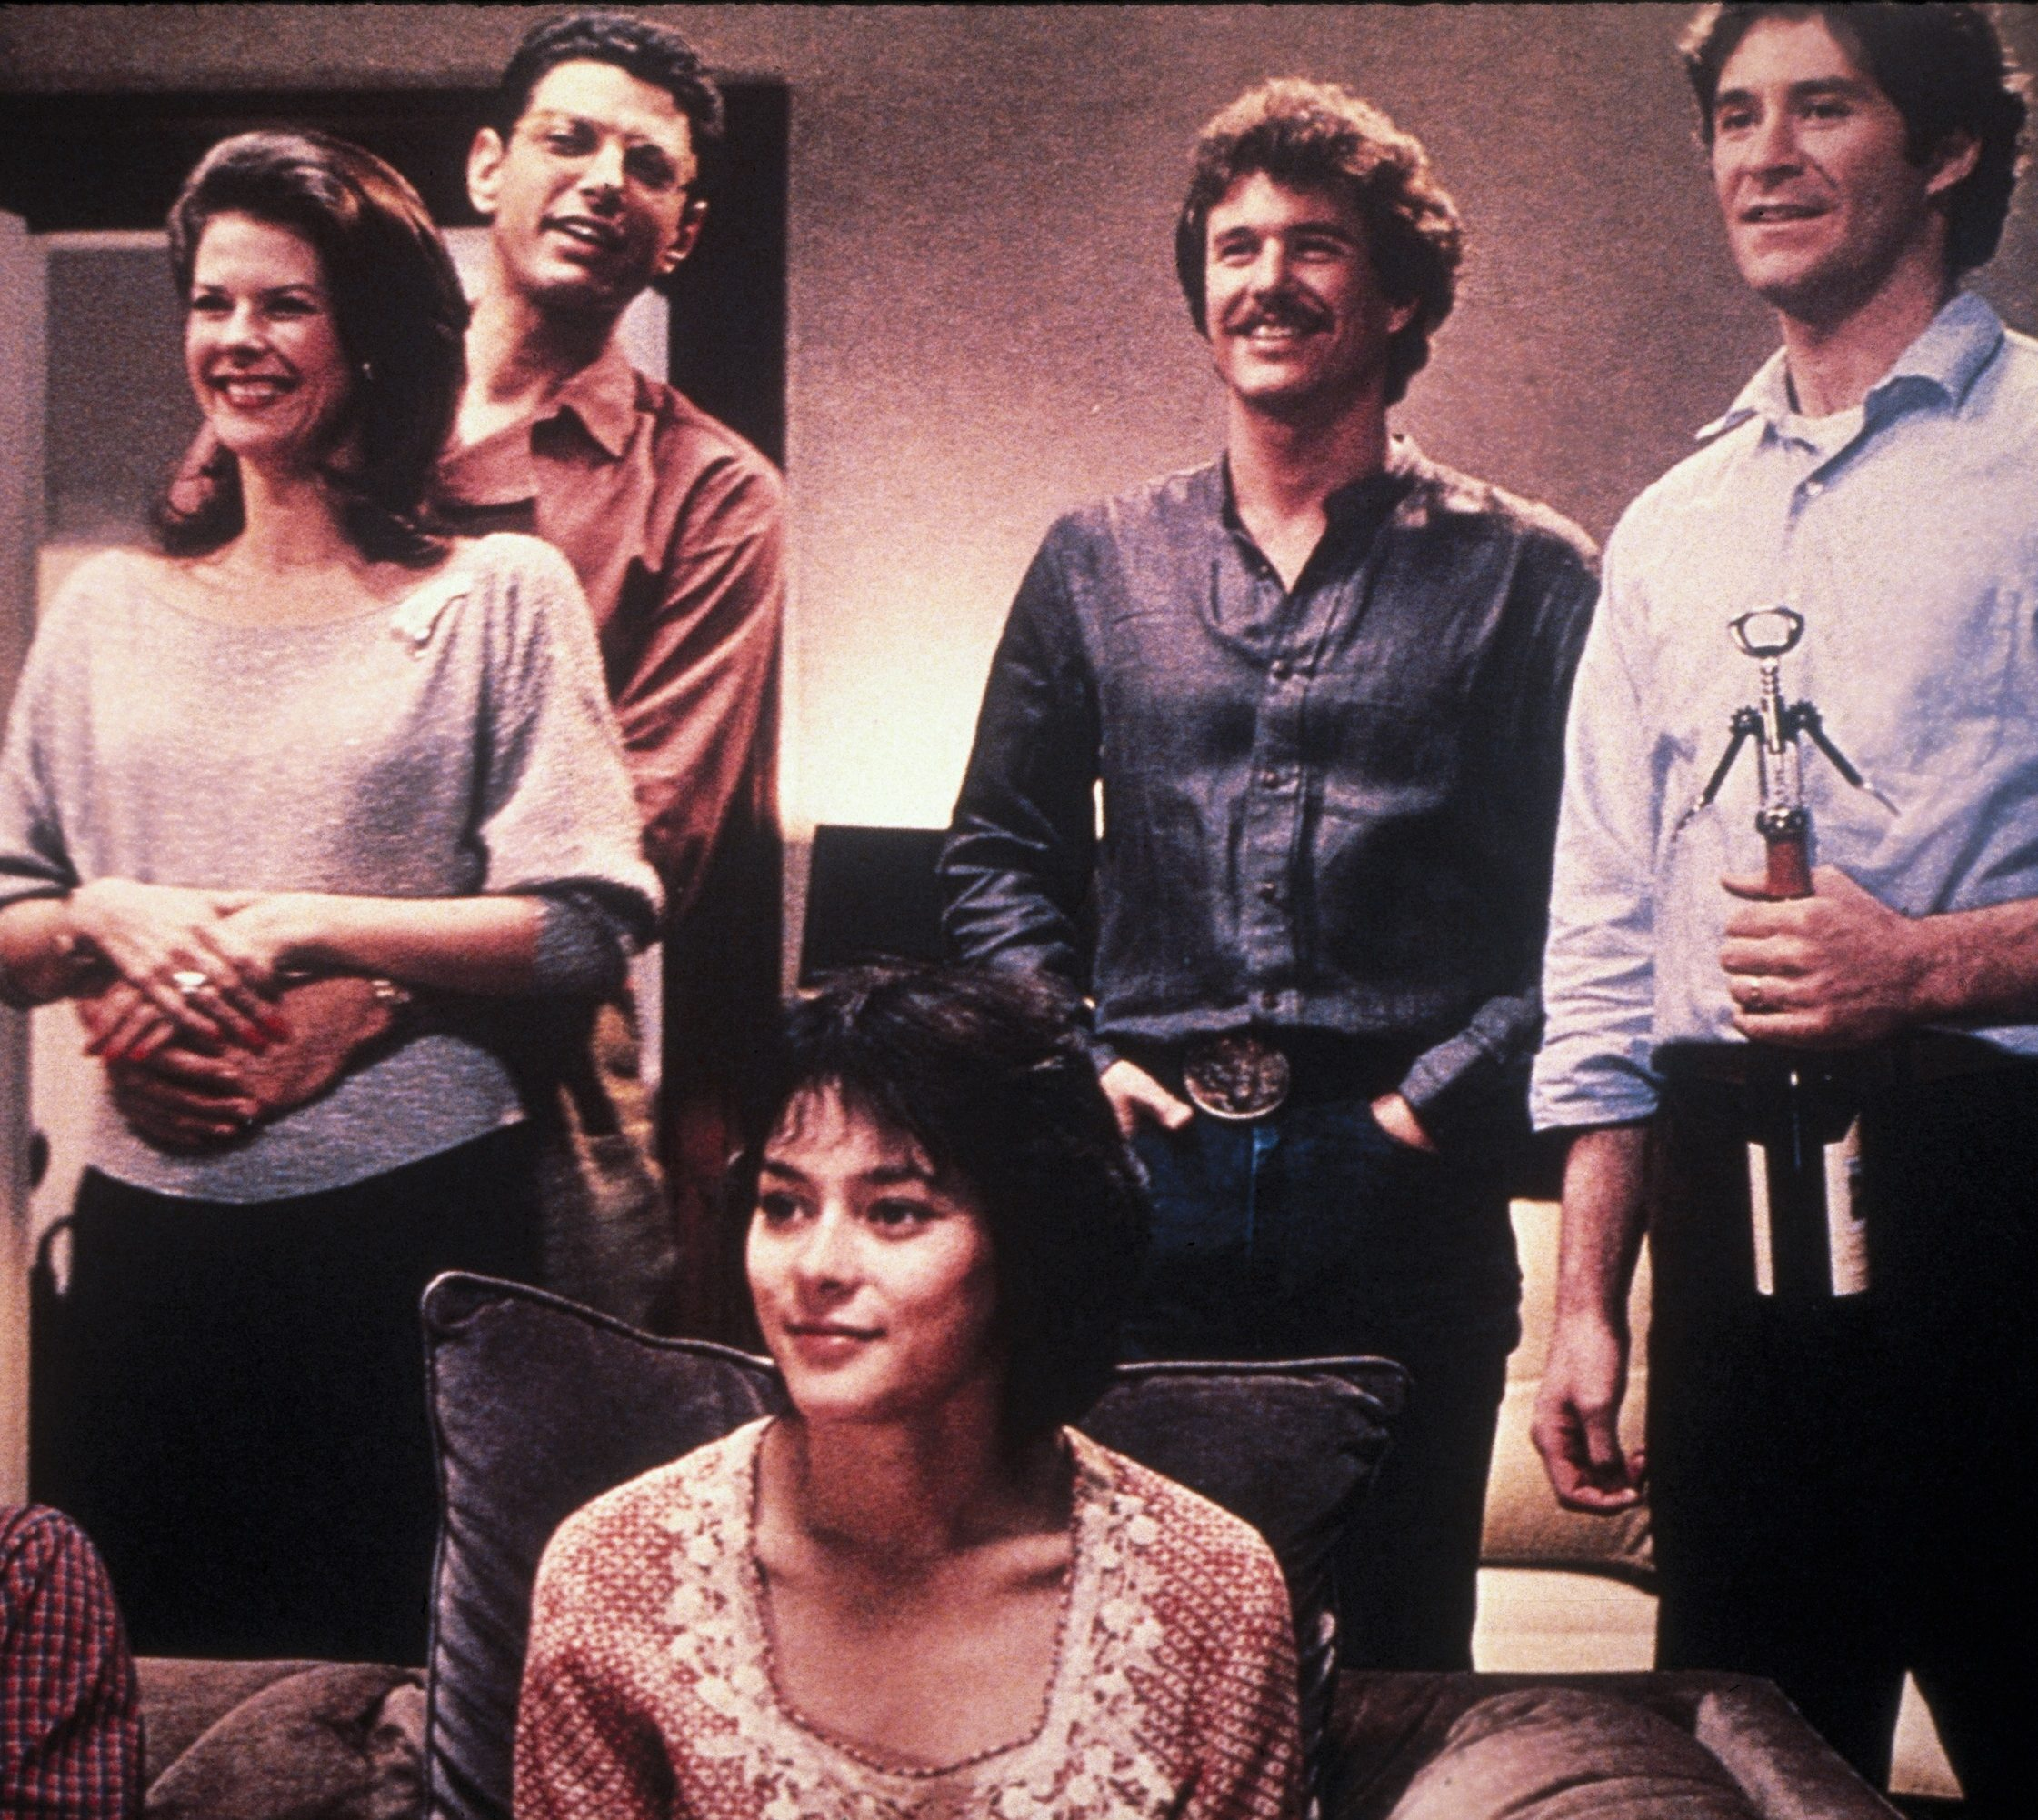 15 scaled e1601630842495 20 Things You Might Not Have Realised About 1983's The Big Chill